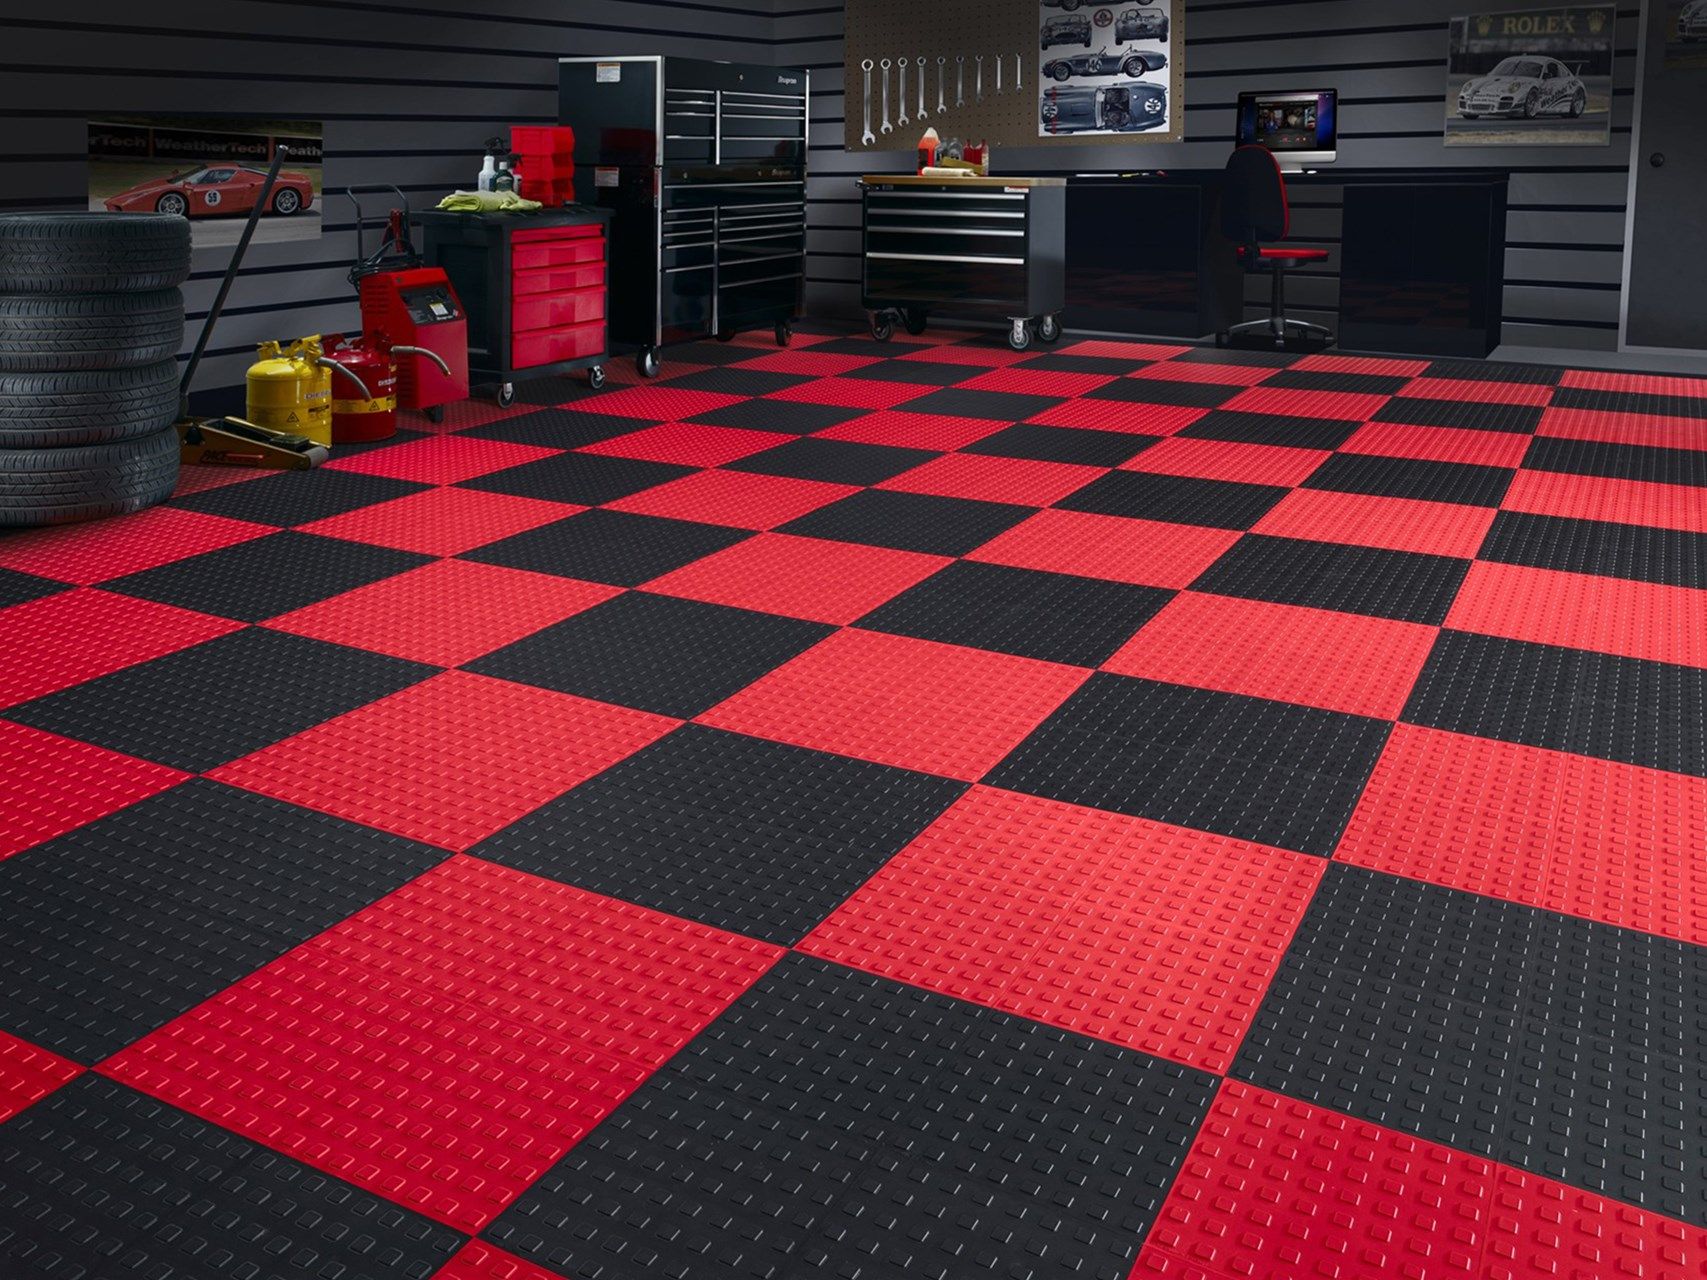 Youtube weathertech mats - Solid With Raised Squares